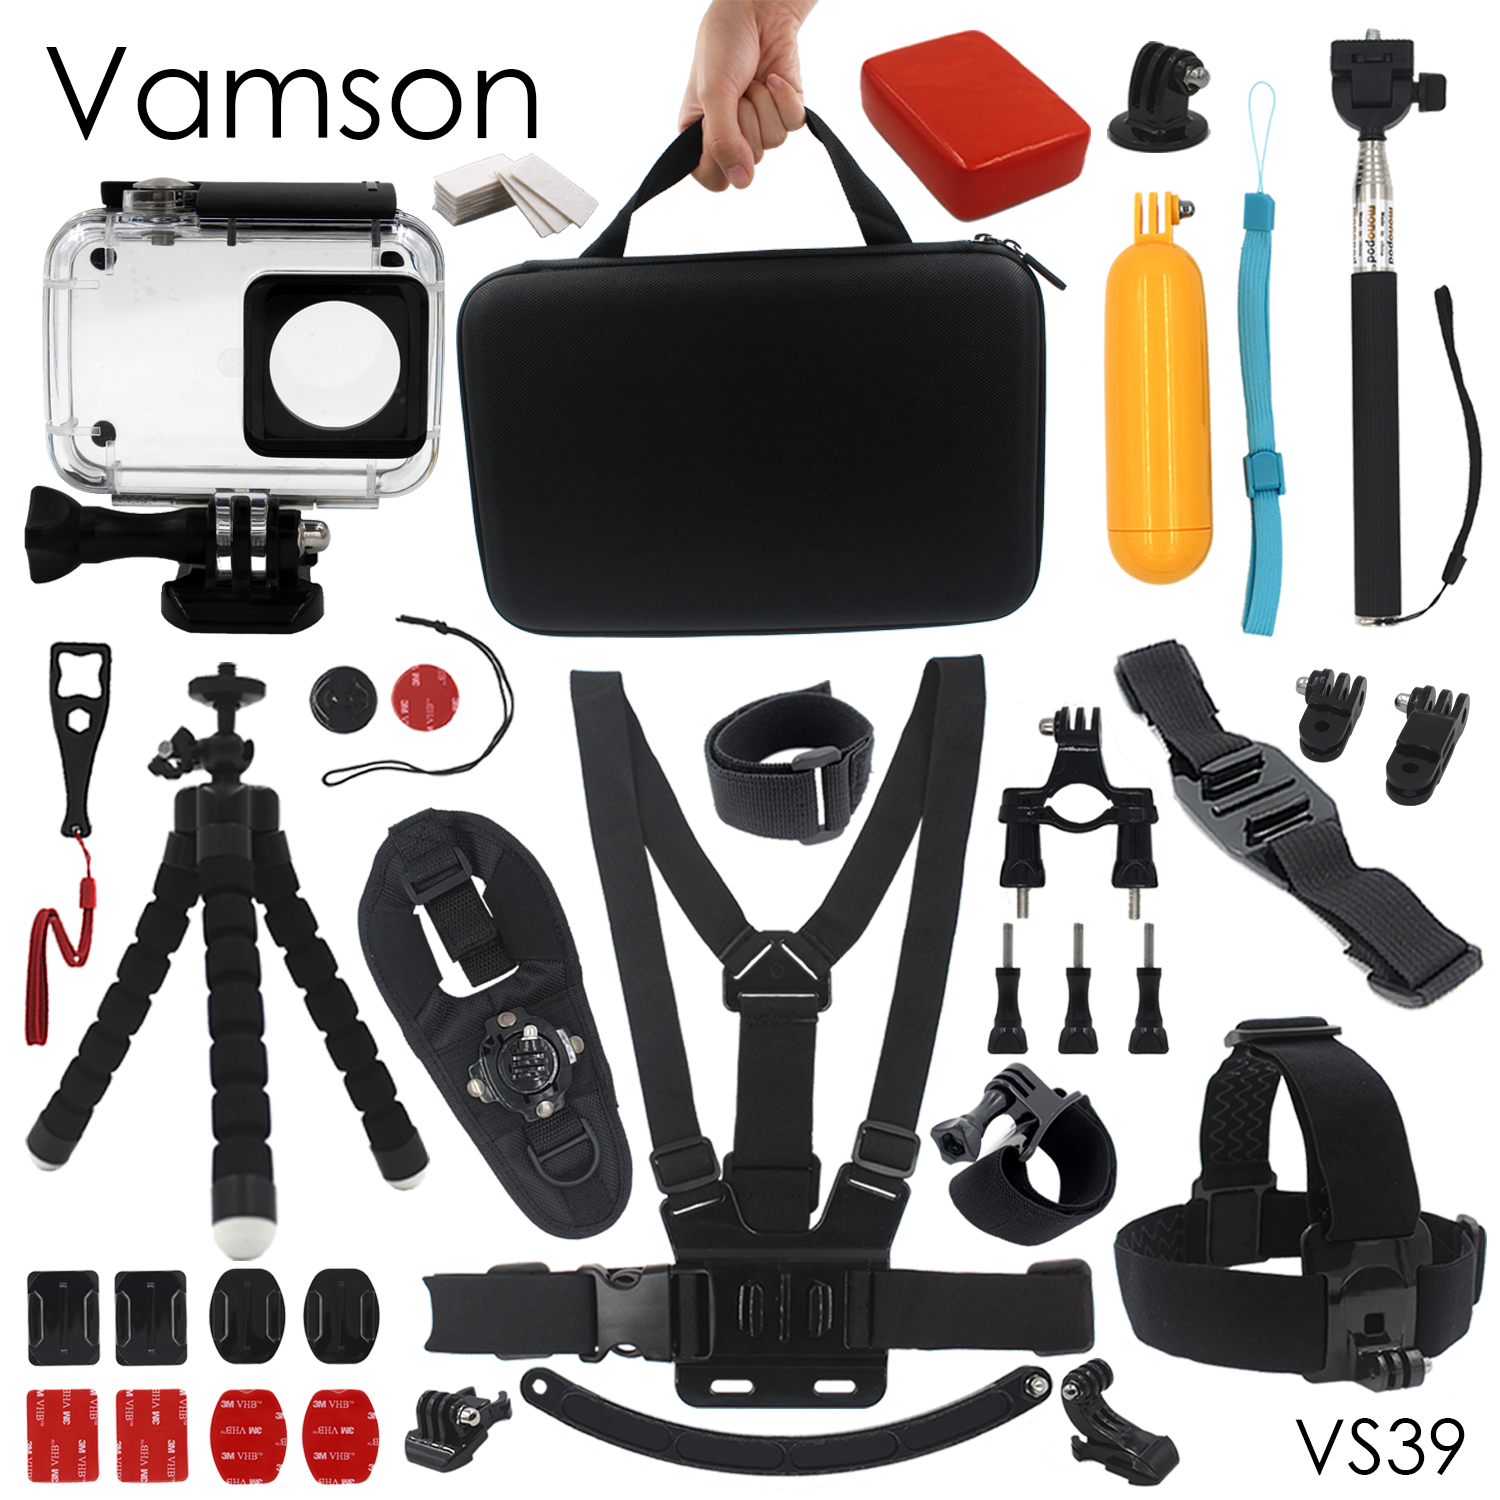 Galleria fotografica Vamson for Xiaomi for Yi Accessories Waterproof housing Case Sponge Octopus Tripod Big Box For yi 2 4K Action Camera VS39